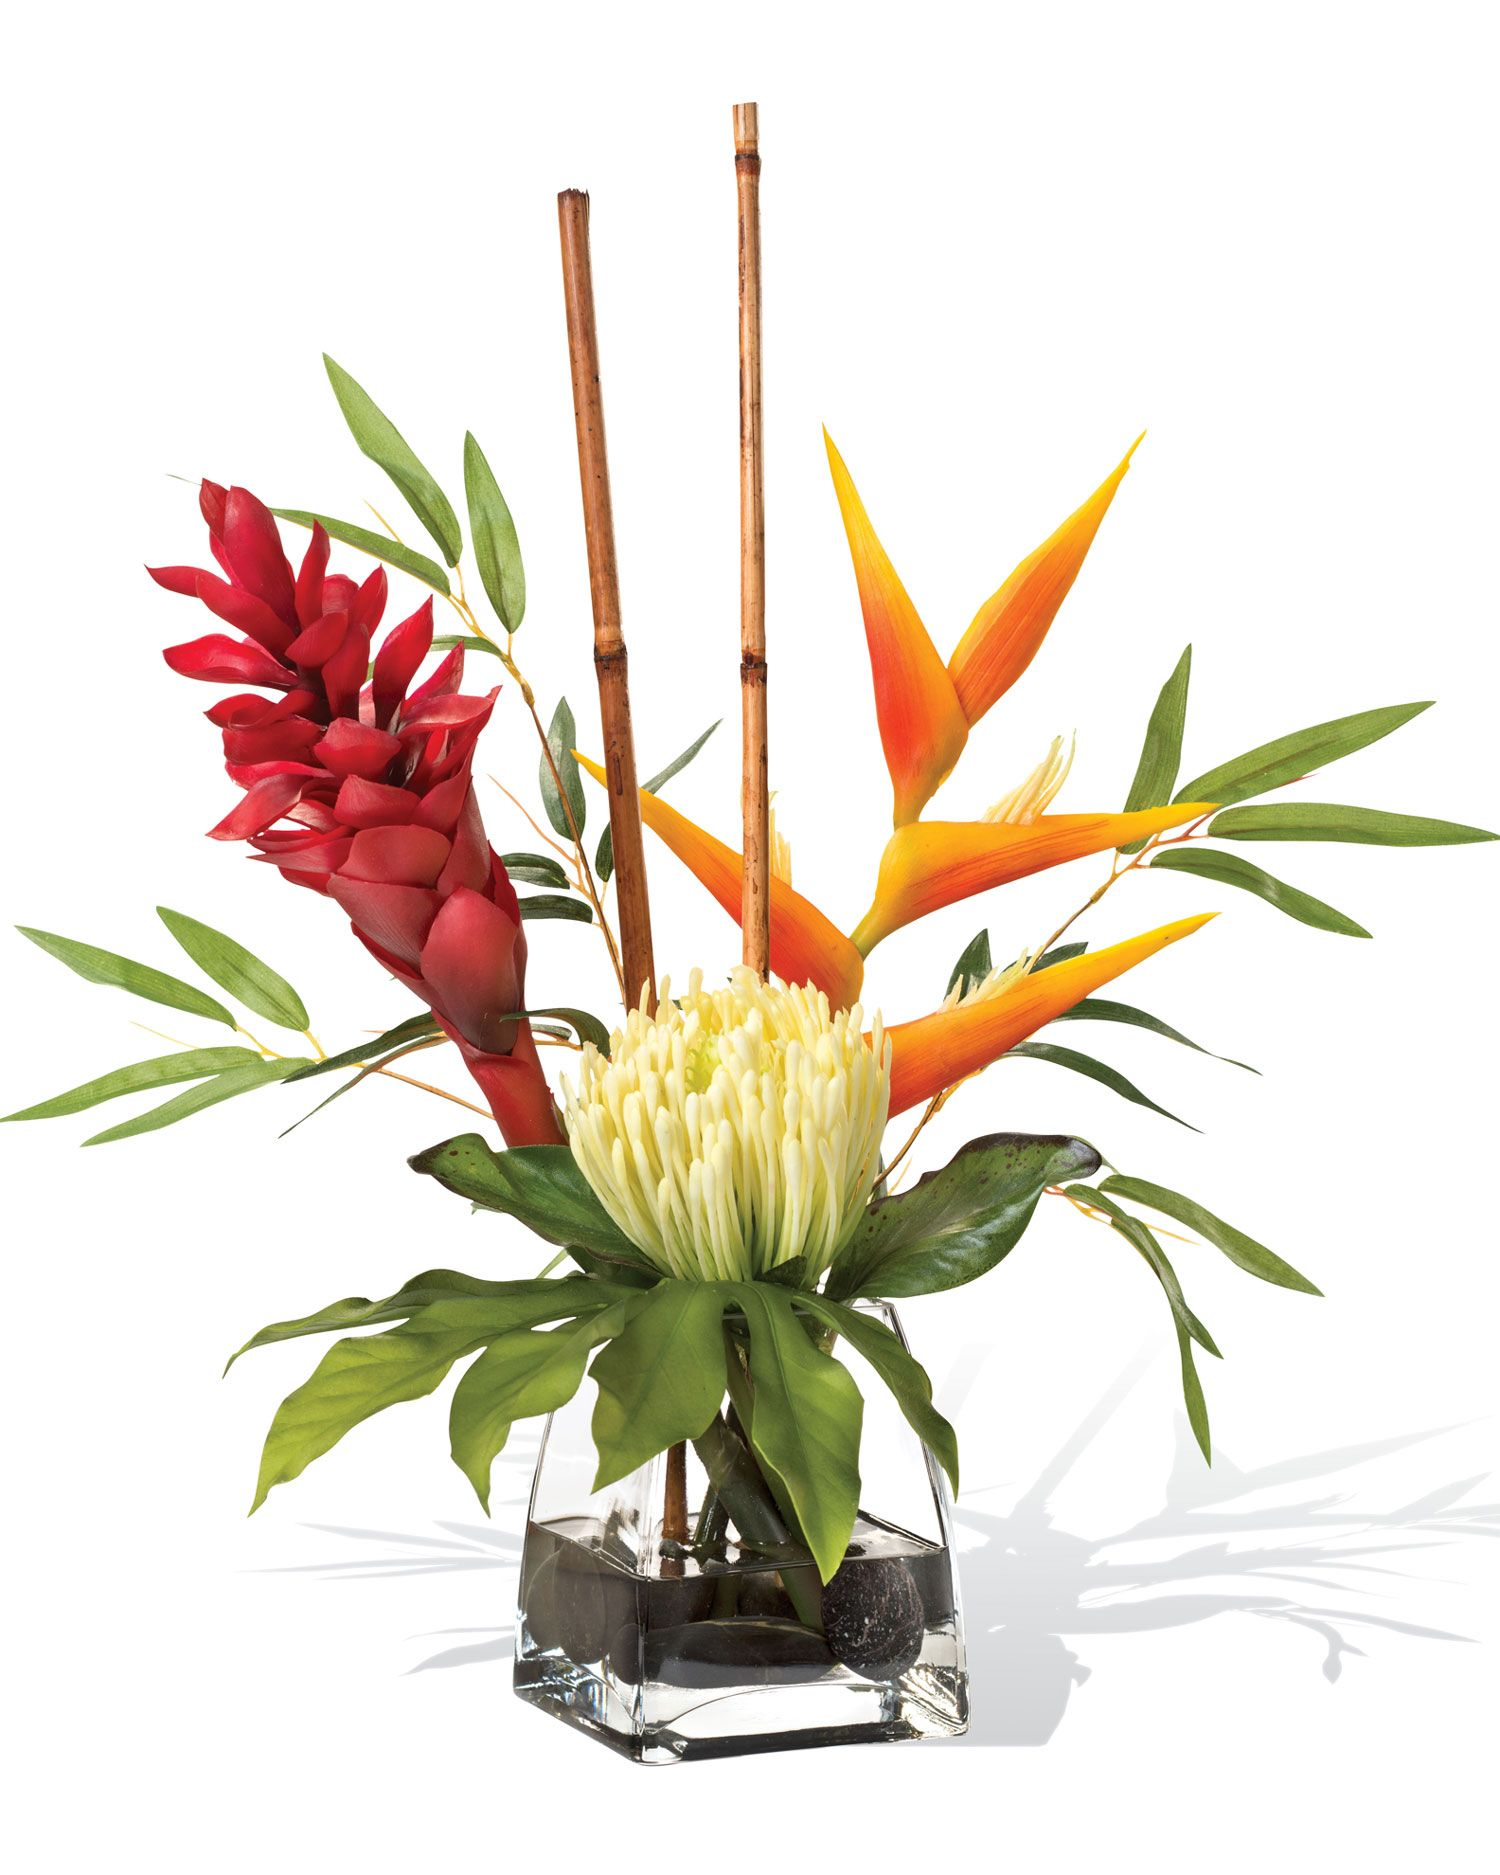 Protea Torch Ginger Accent Silk Flower Arrangement Artificial Flower Arrangements Artificial Flowers Artificial Plants